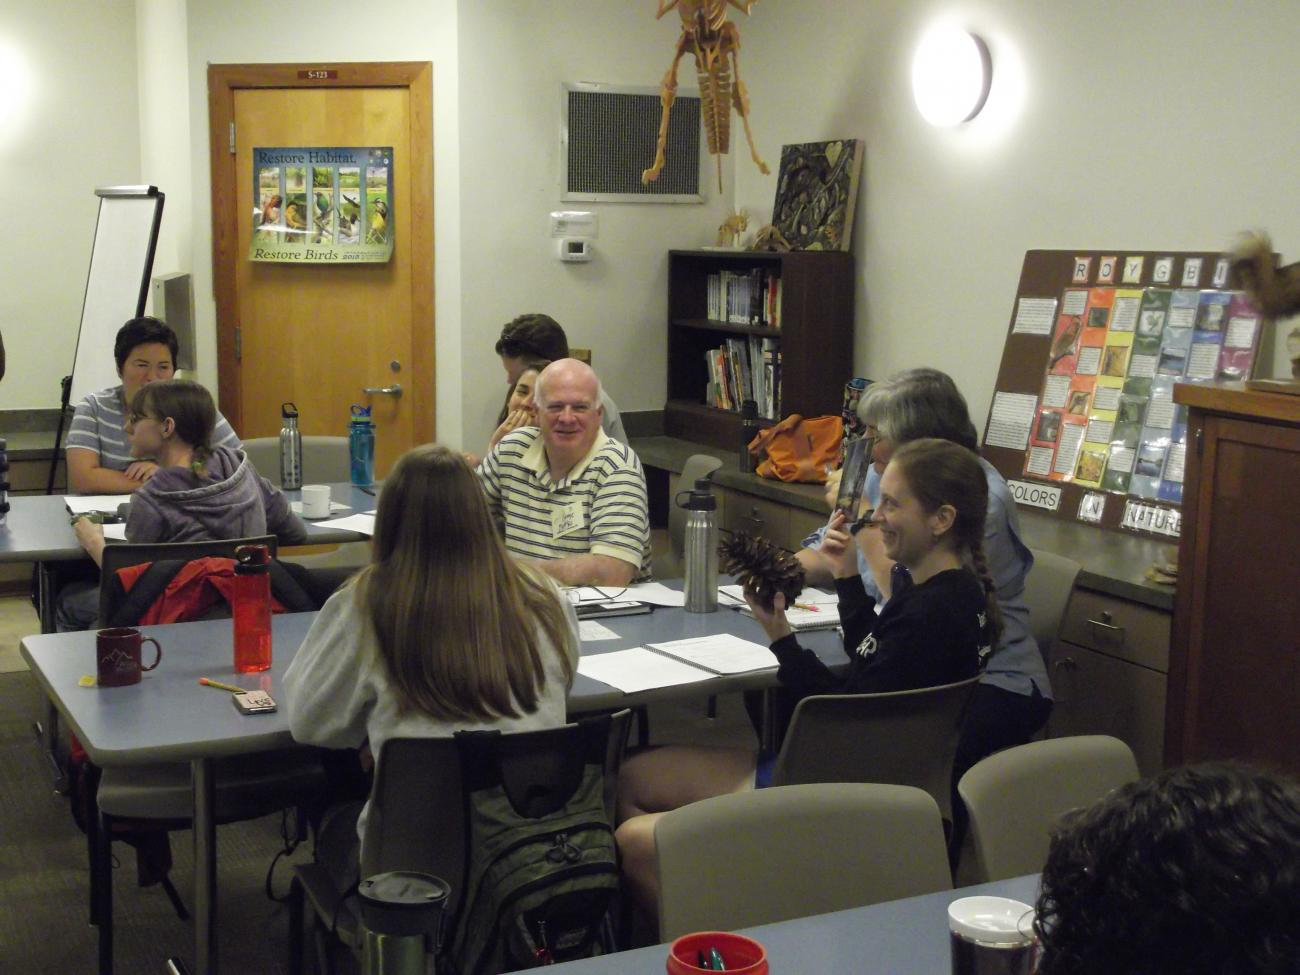 Adult workshop participants participating in a small group discussion inside a classroom in the Blue Jay Center for Environmental Education